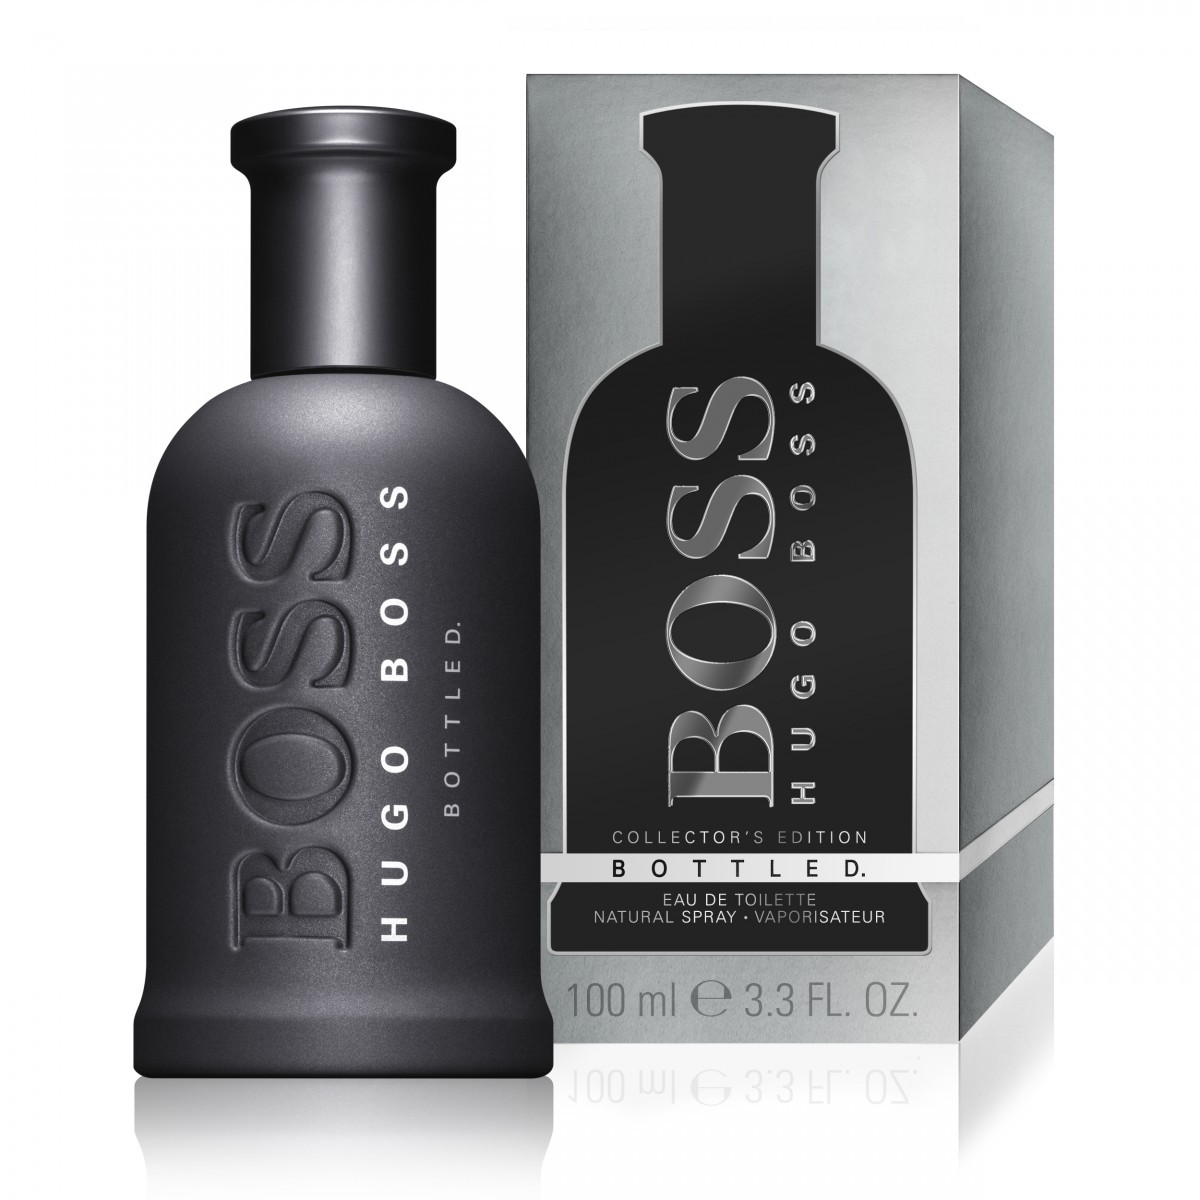 737052806266_boss_bottled_collectors_edition_100ml_inout